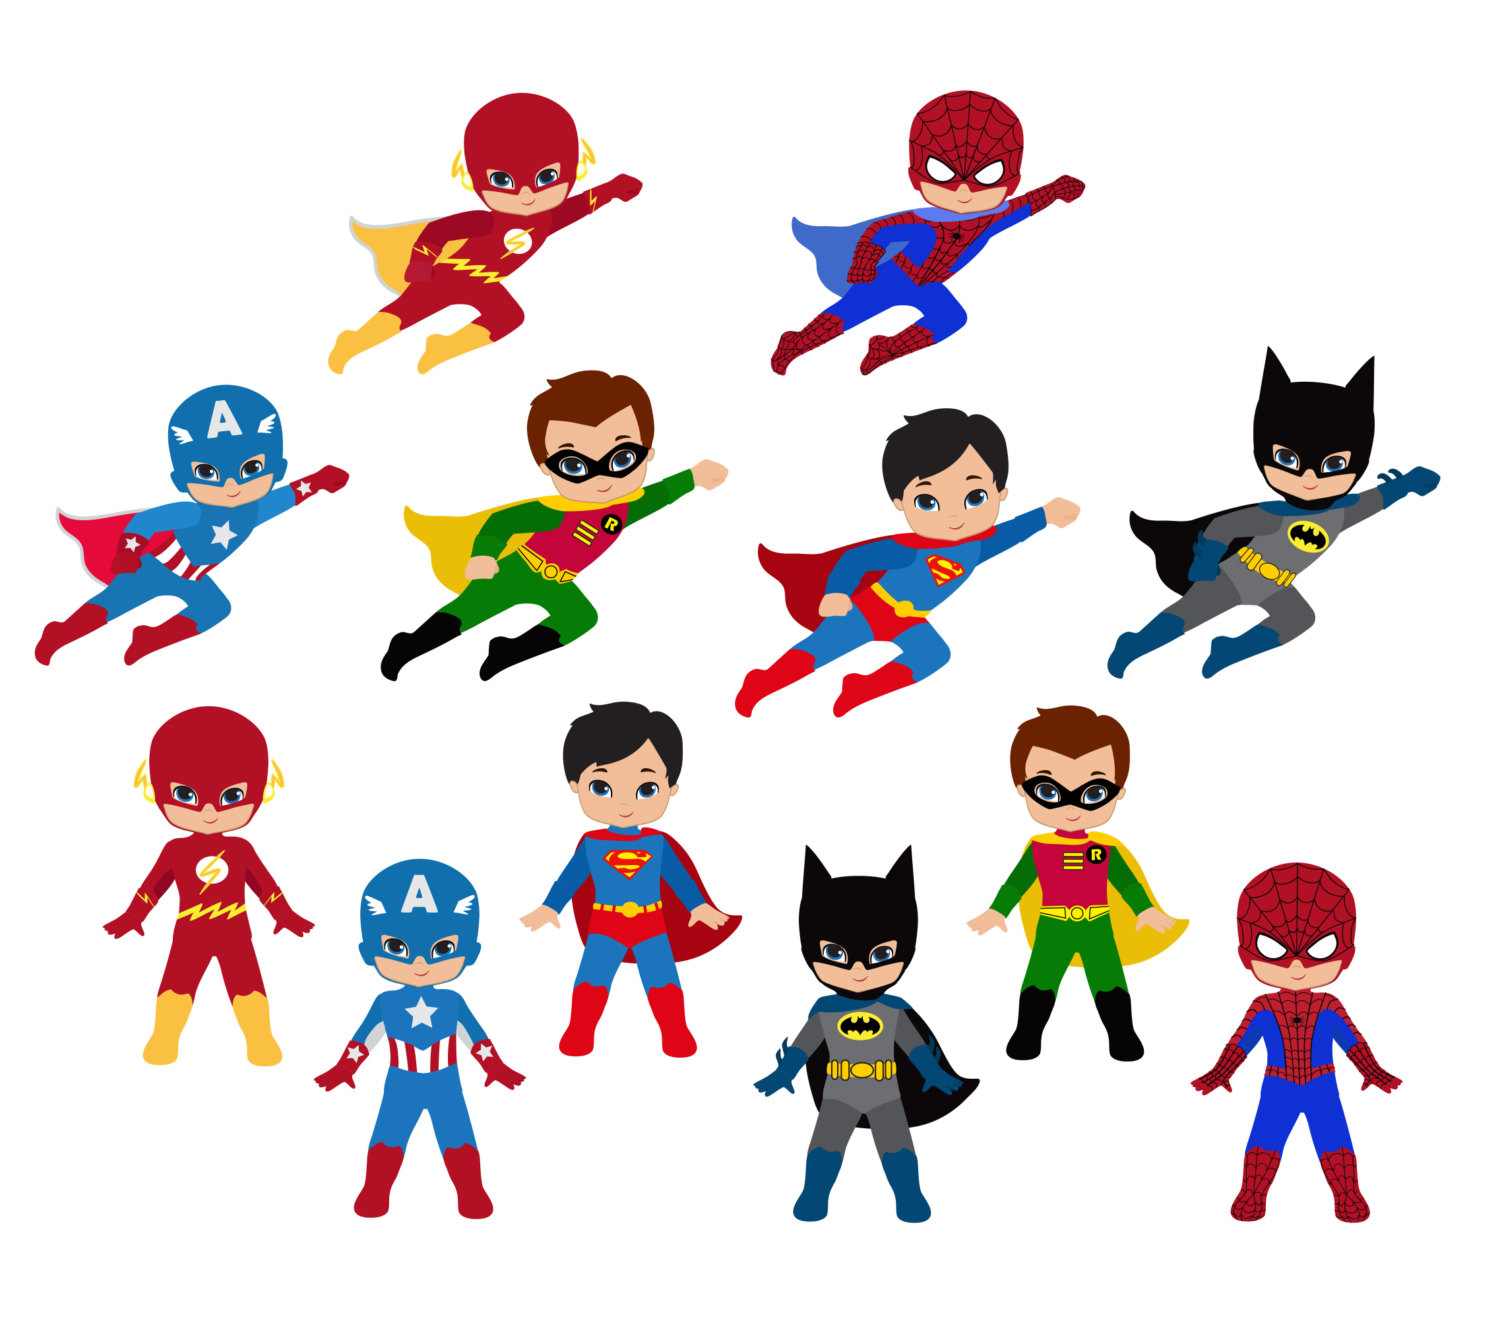 Free Superhero Clipart | Fonts/Clipart F-free superhero clipart | Fonts/Clipart freebies | Pinterest | Teaching, Clip art and Boys-3